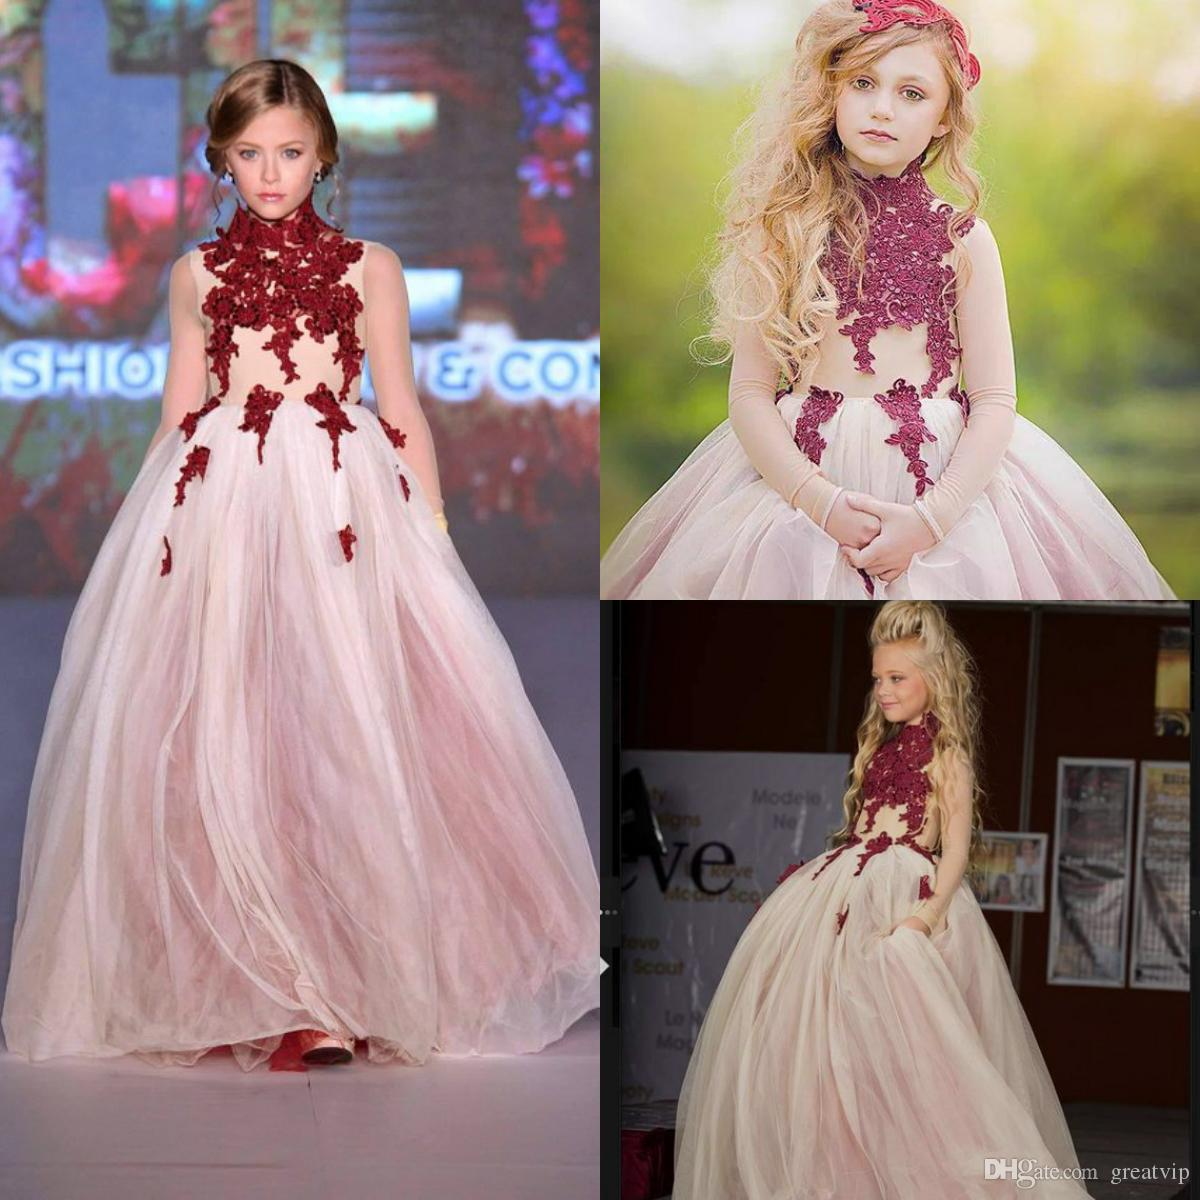 High Neck Flowers Girls Dresses A Line Burgundy Lace Applique Long Sleeve Teens Princess Pageant Gowns Prom Wedding Party Dress Custom